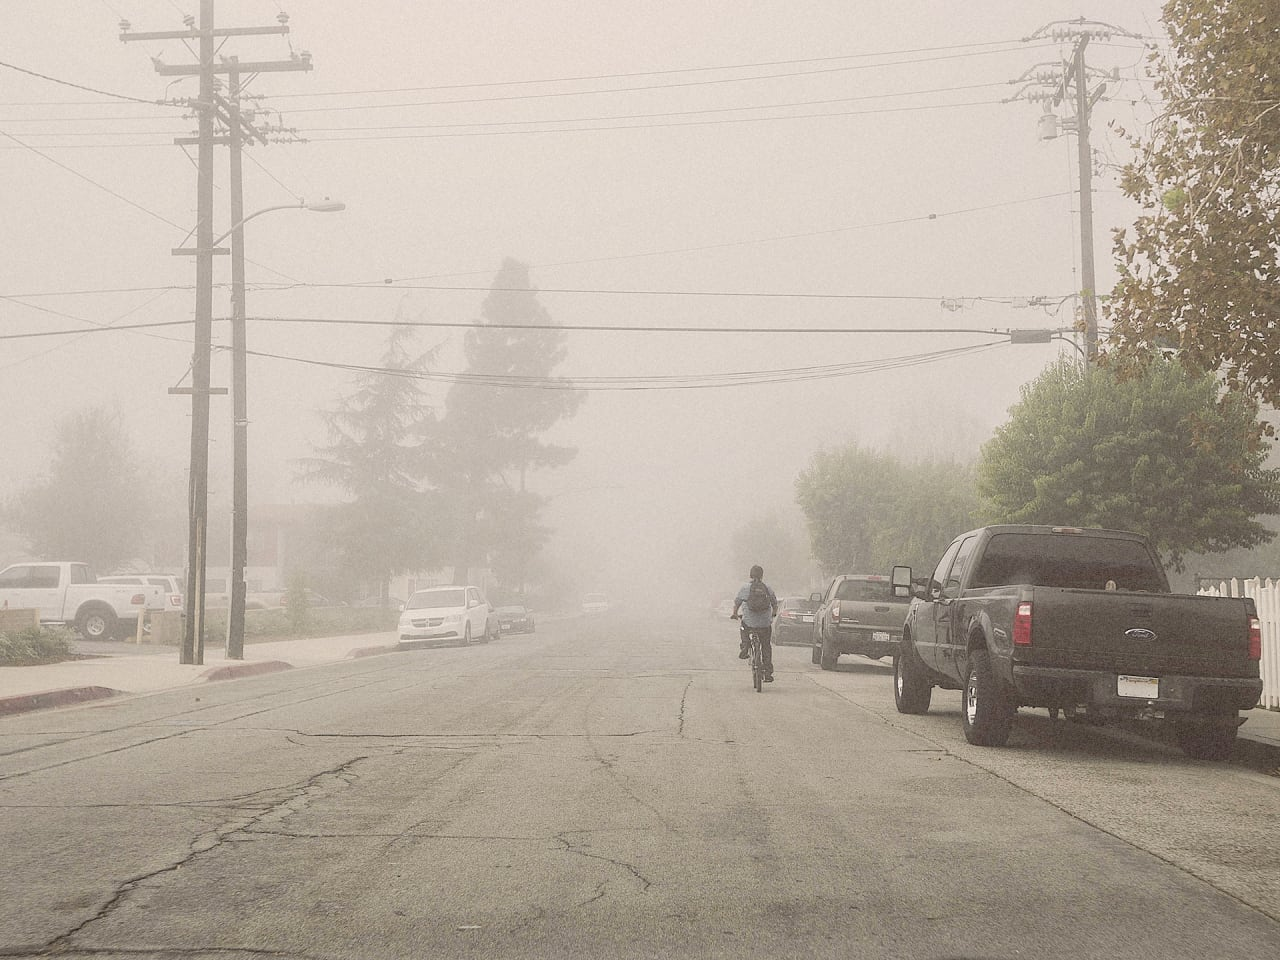 Bad Air Quality Kills Five Times As Many People As Bad Water